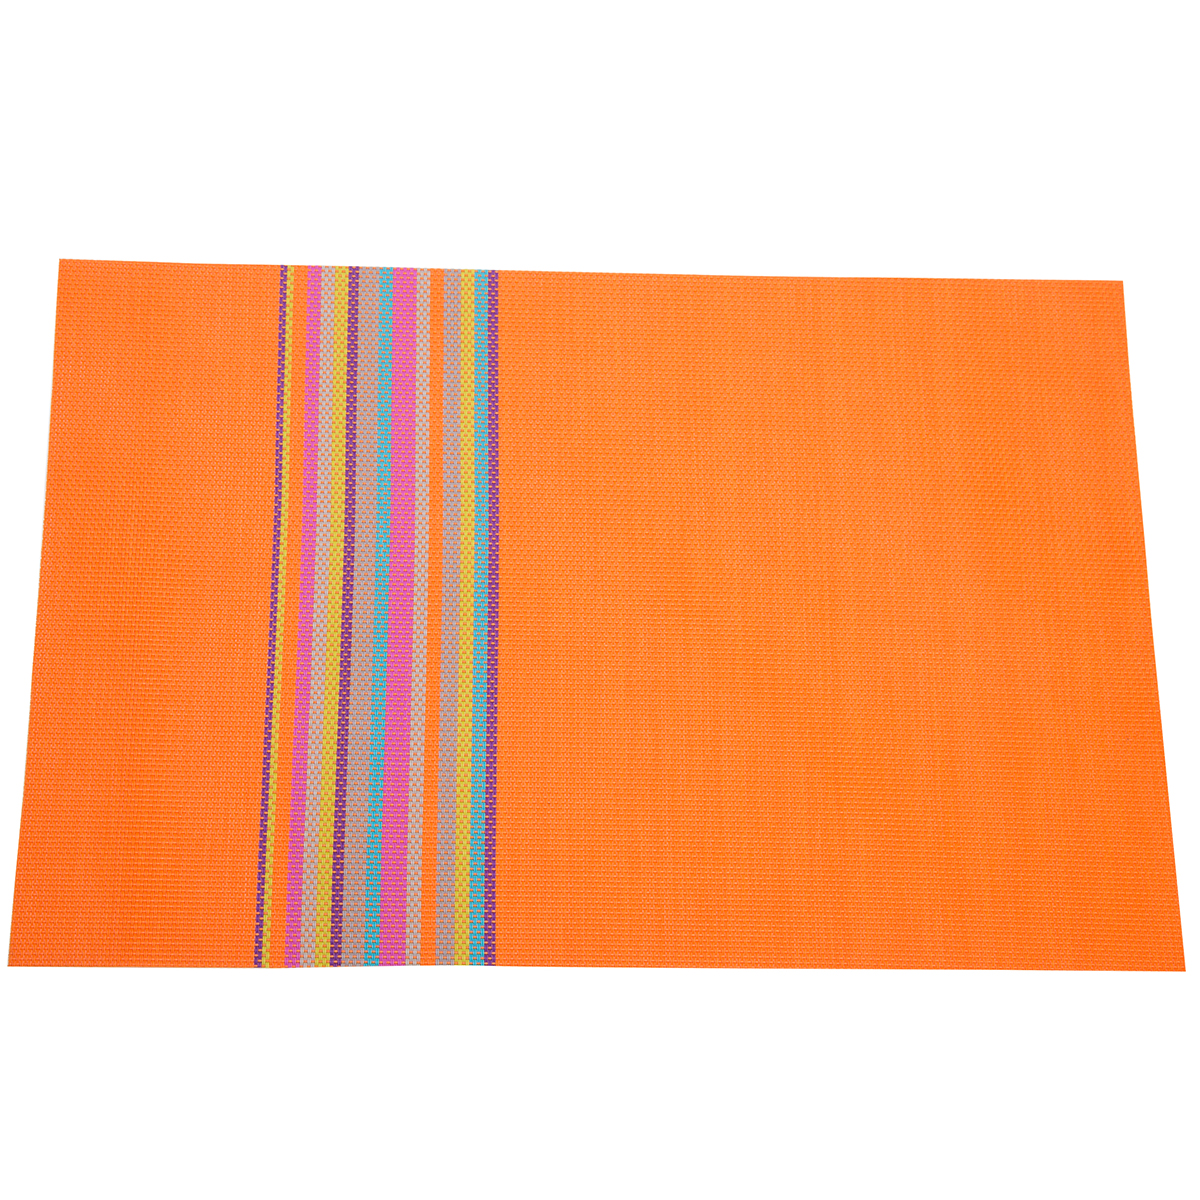 Heat Insulation Stain resistant Woven Vinyl Placemats 18  : PLM020C from www.moriental.com size 1200 x 1200 jpeg 1392kB